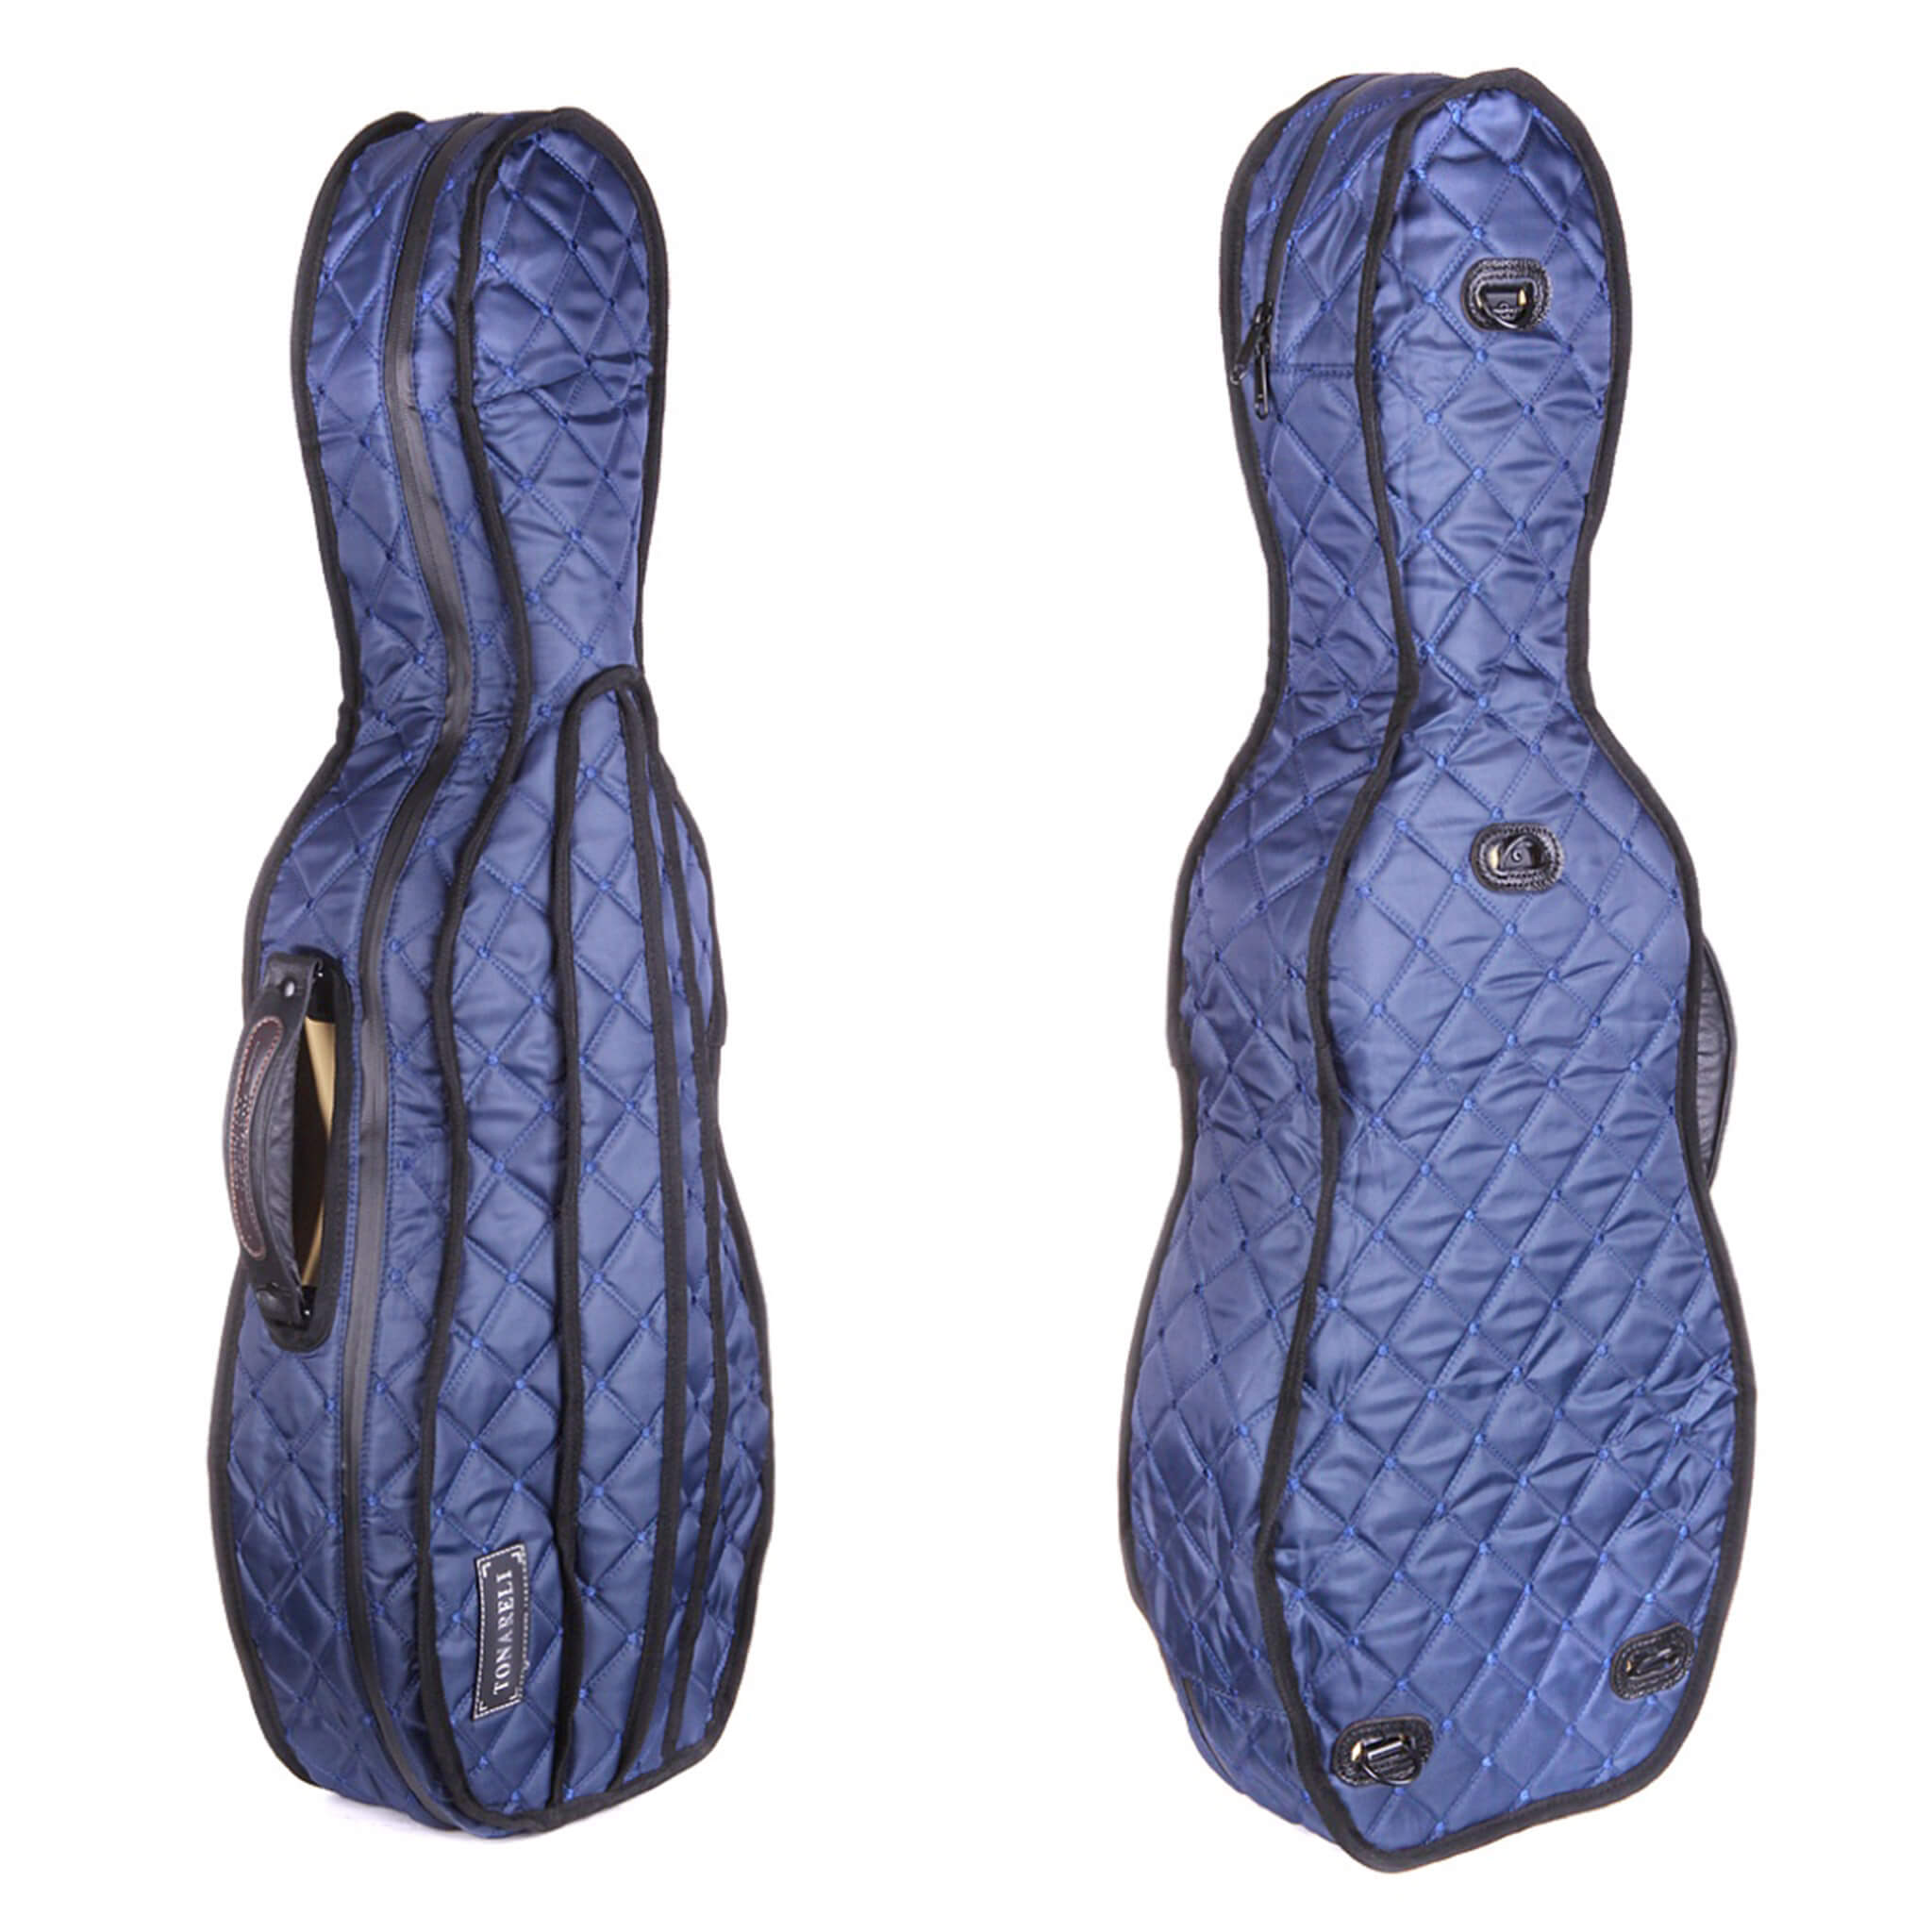 Tonareli Fiberglass Shaped Violin Case Cover